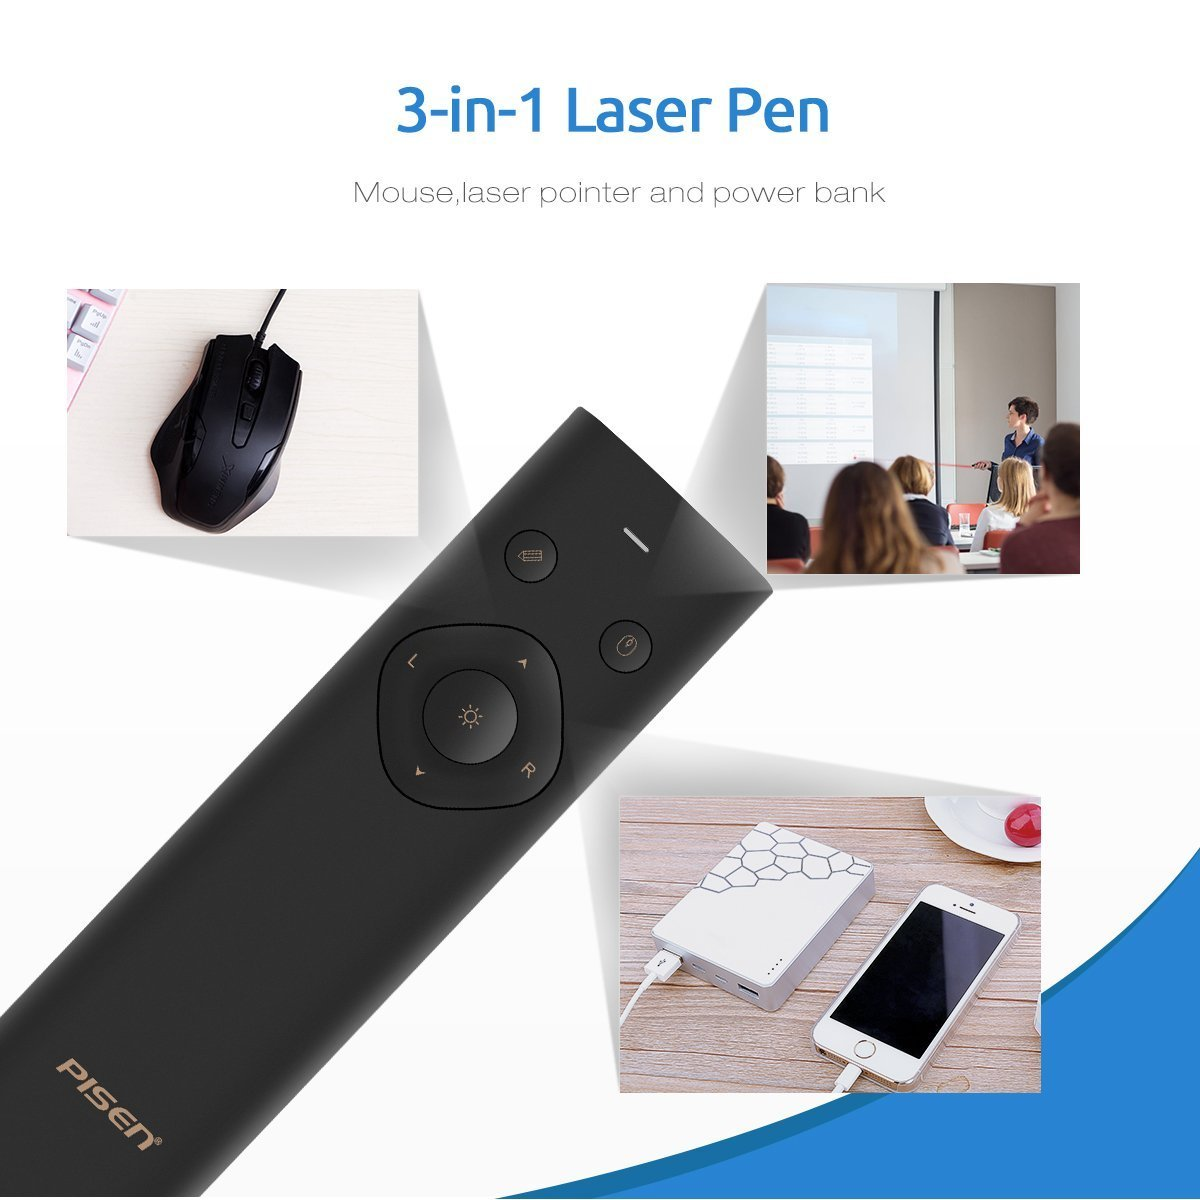 Presentation Remote, PISEN Pointer Presenter Rechargable 2.4GHz PPT Clicker, Multi-Function Fly Mouse 2500mAh Power Bank Wireless Presenter Remote for Computer, MacBook, Projector (Black) by PISEN (Image #2)